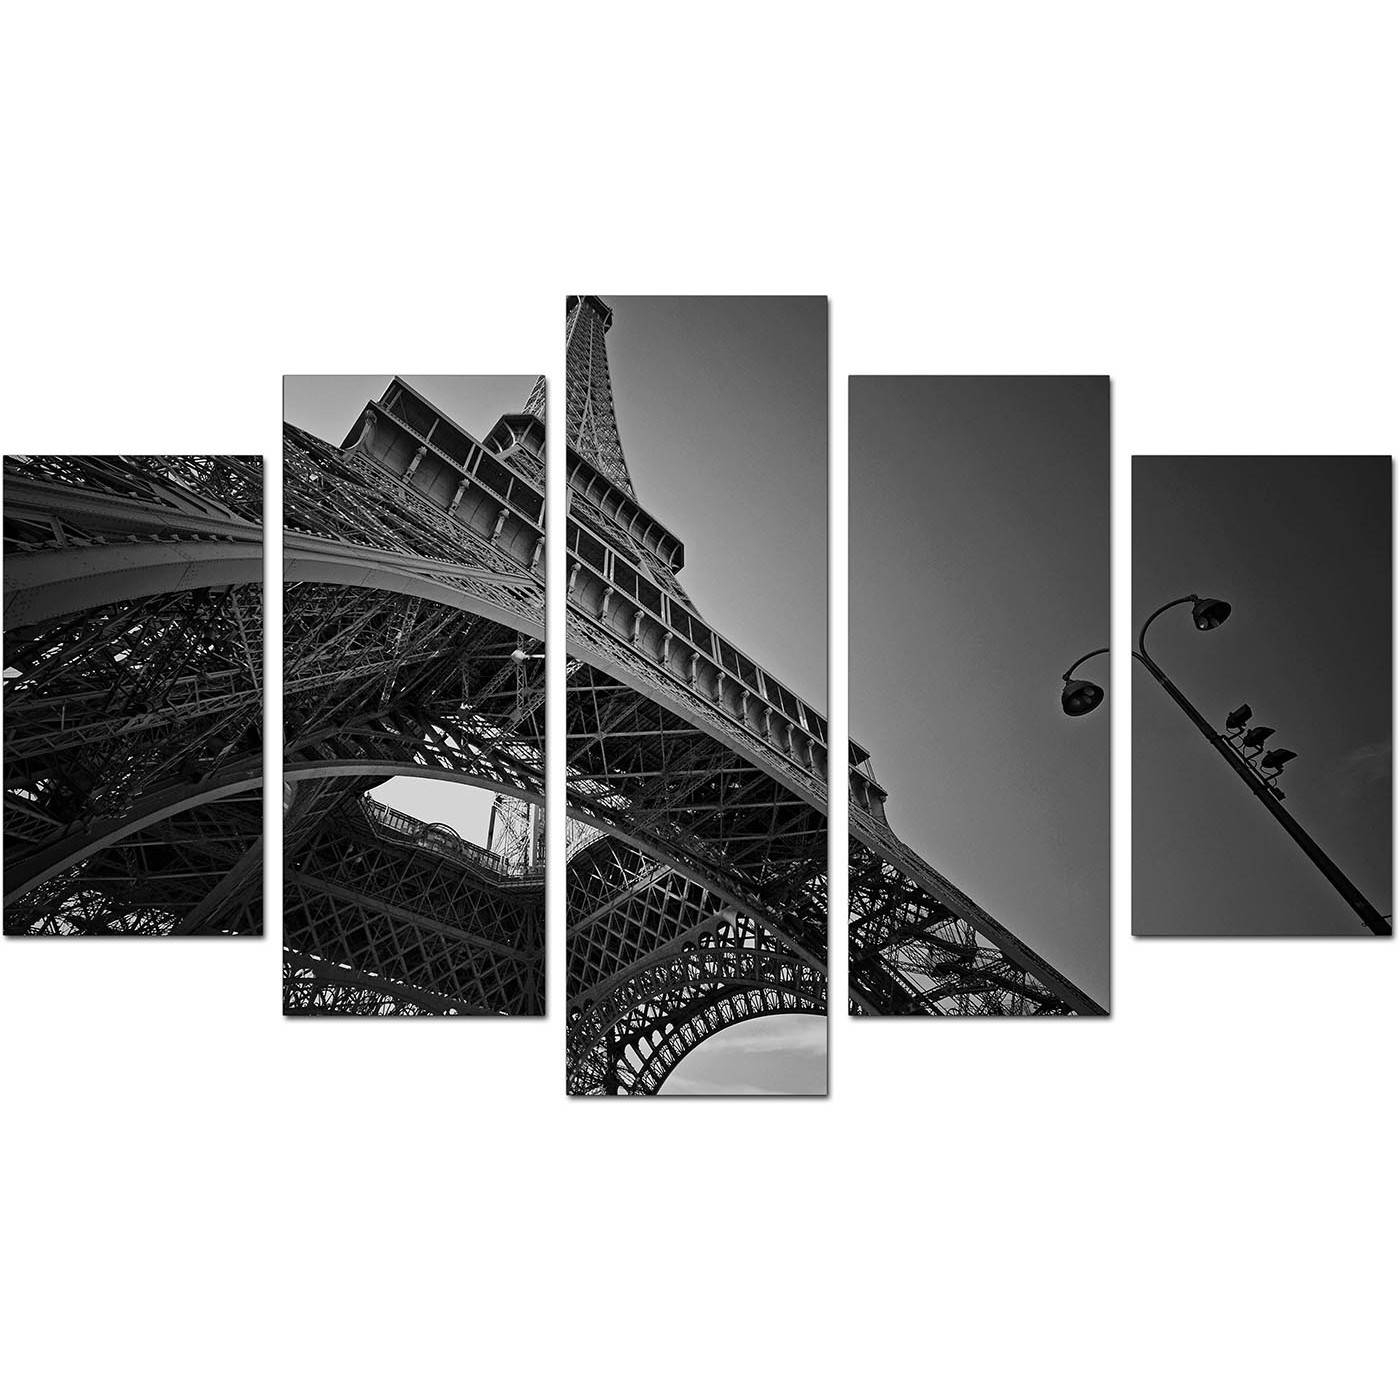 Extra Large Eiffel Tower Paris Canvas Art Set Of 5 In Black & White In Most Popular Black And White Paris Wall Art (View 8 of 25)